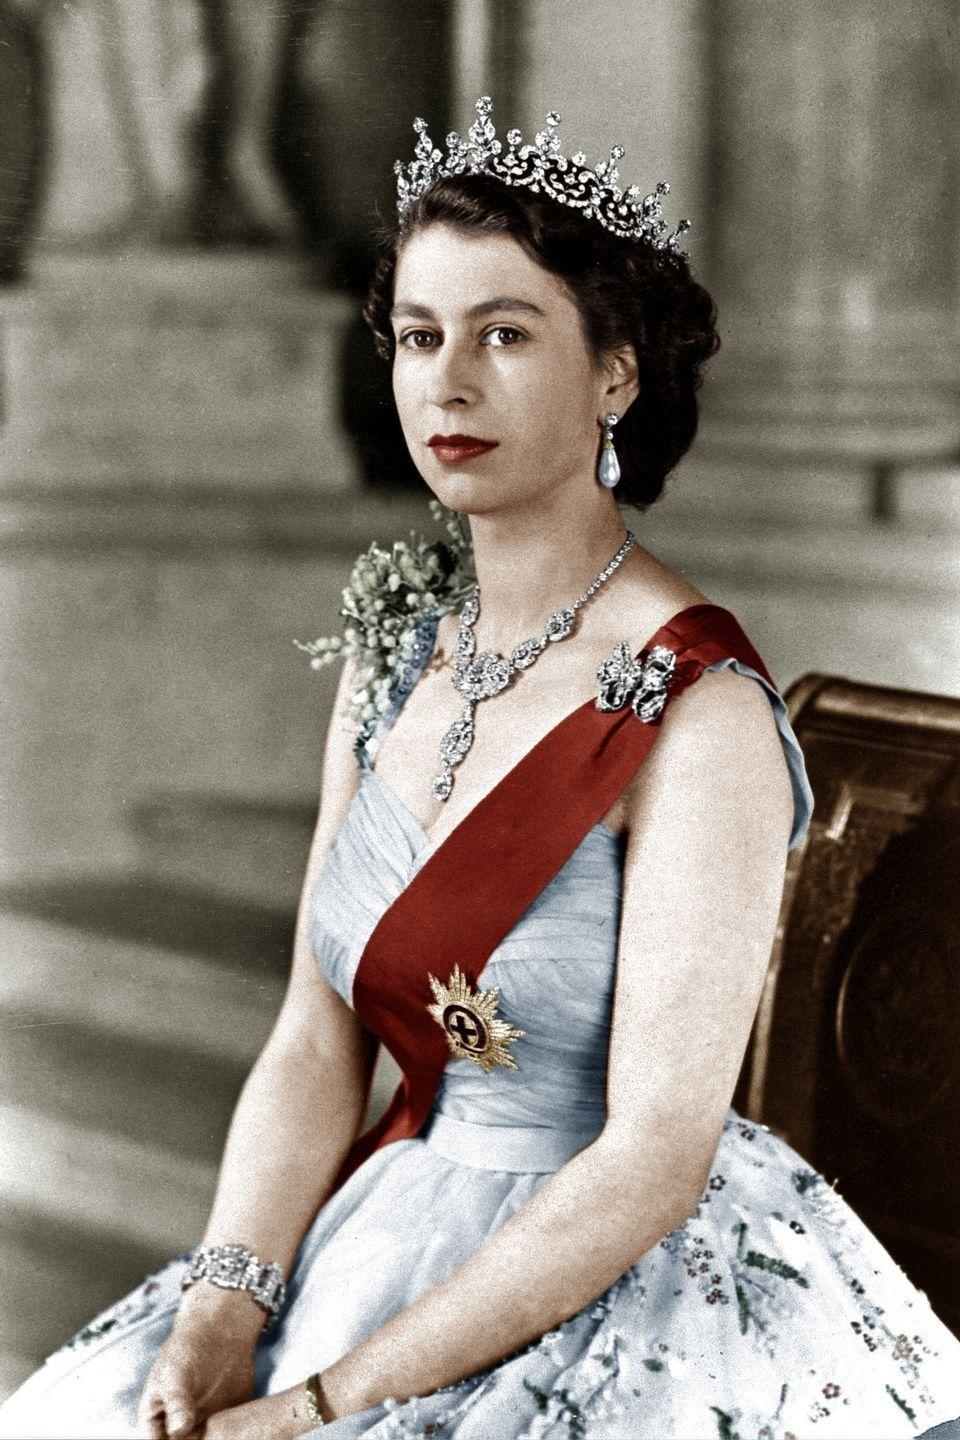 <p>In a sleeveless and embellished blue dress, diamond earrings, necklace, and a bracelet–topped off with a sparkly diamond tiara. </p>